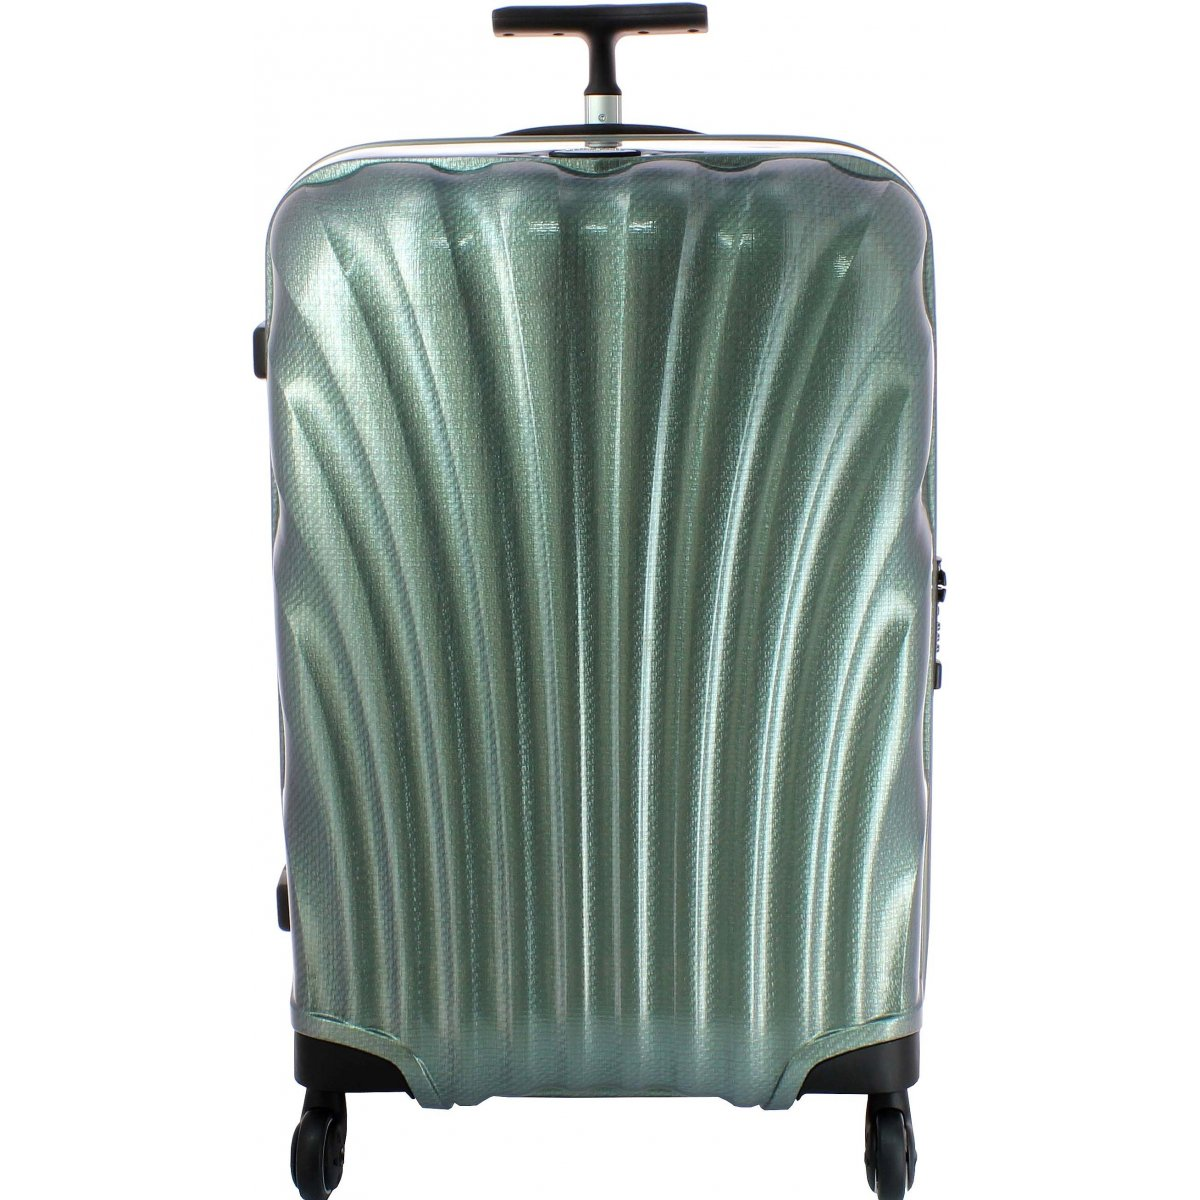 valise samsonite comsmolite spinner 81 cm cosmolite52 couleur principale vert metallique. Black Bedroom Furniture Sets. Home Design Ideas